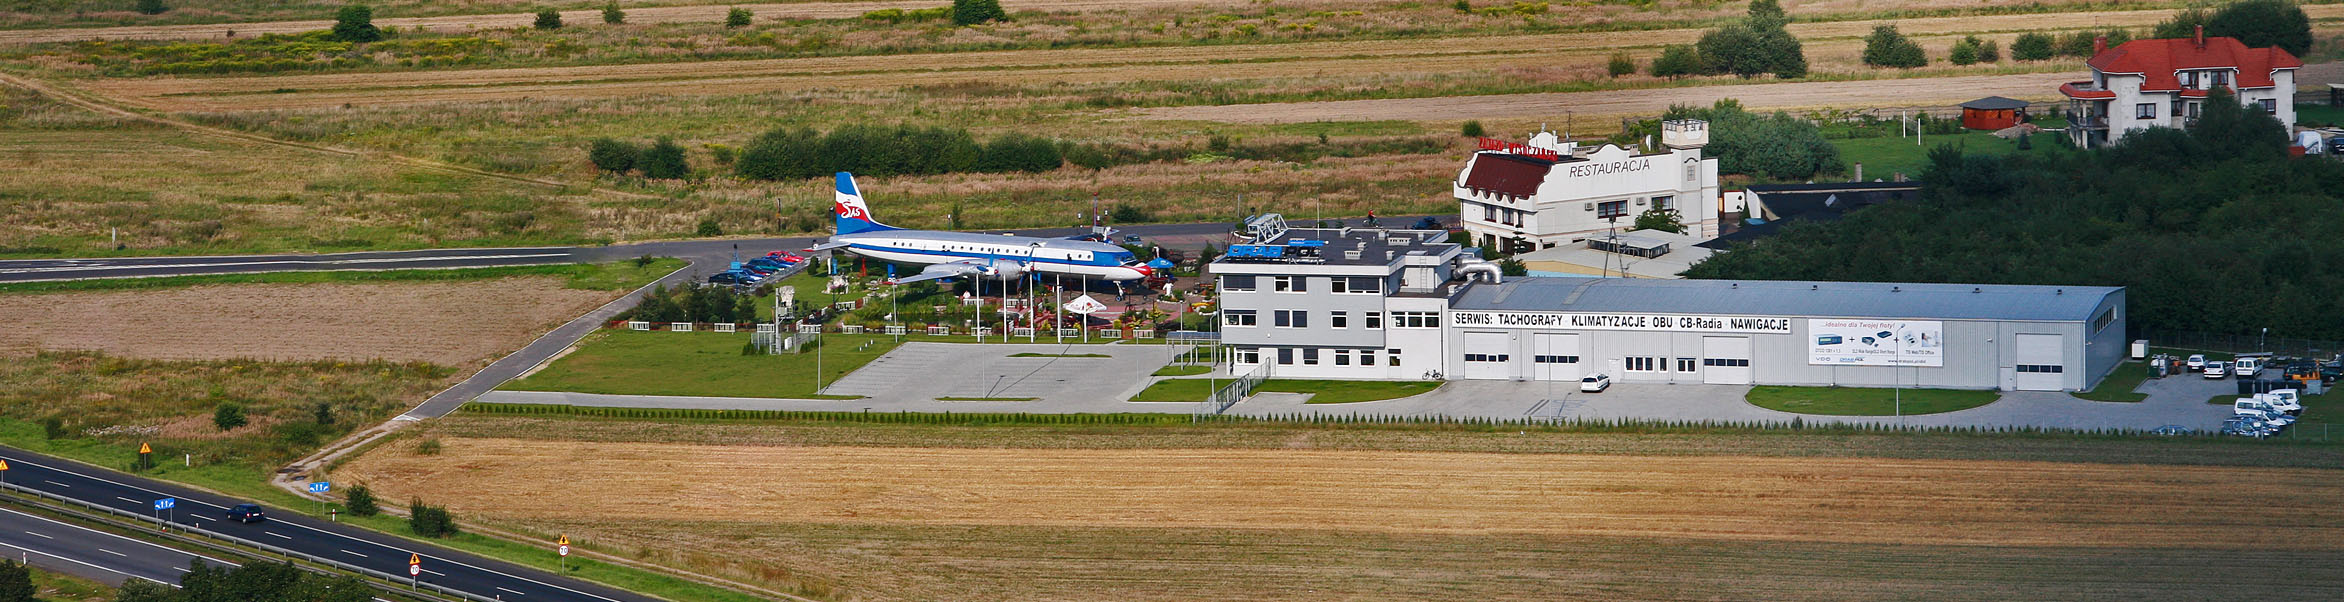 headquarters aerial view of